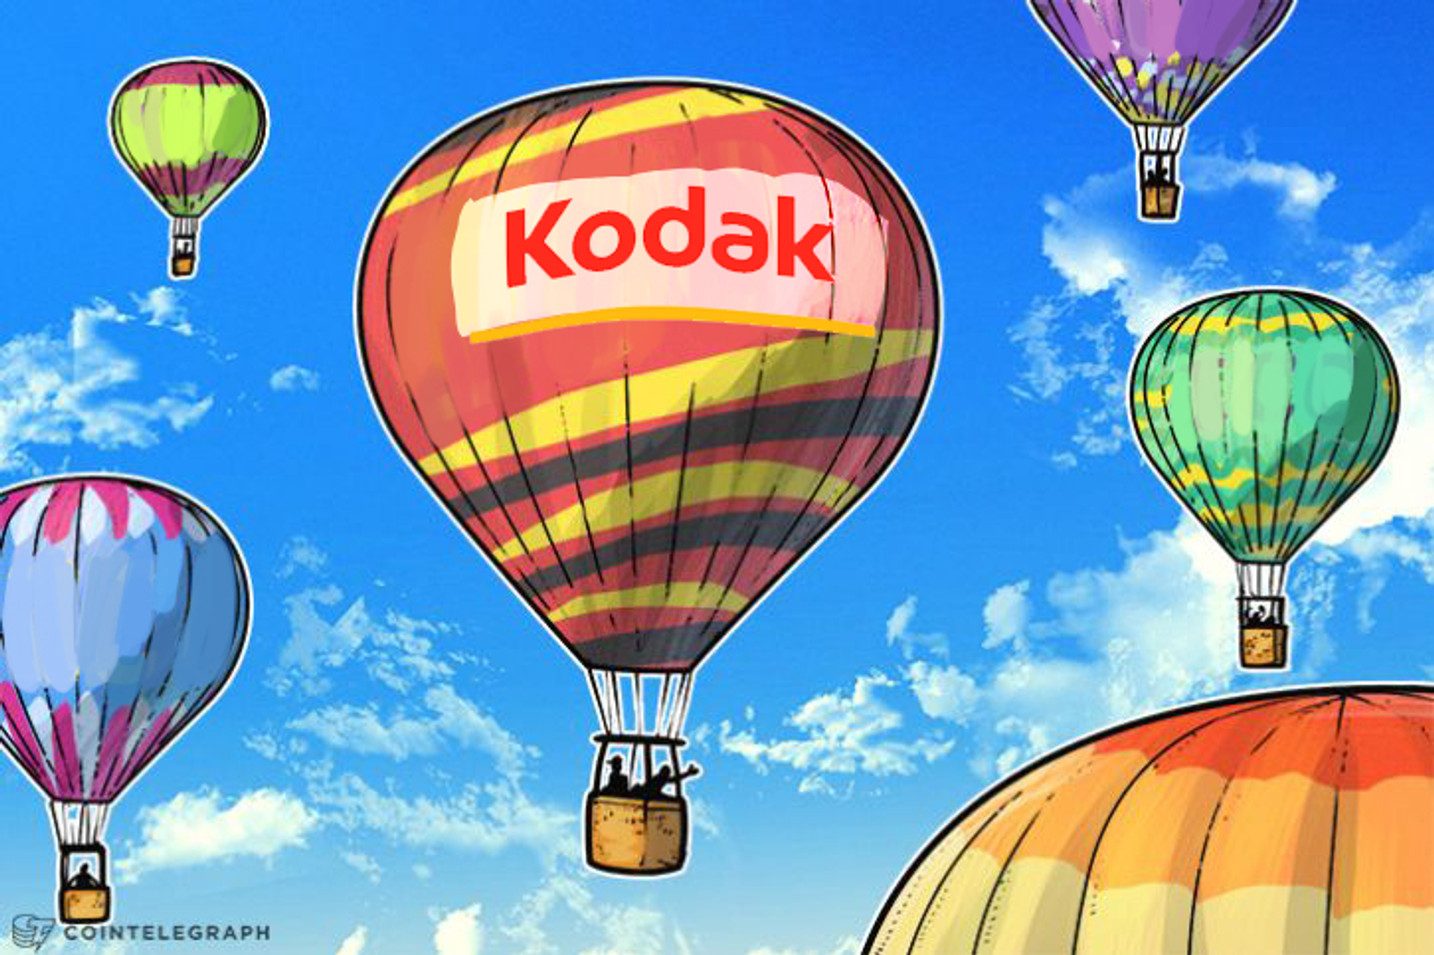 Kodak Sees Stock Price Soar Following Unveiling of KodakCoin